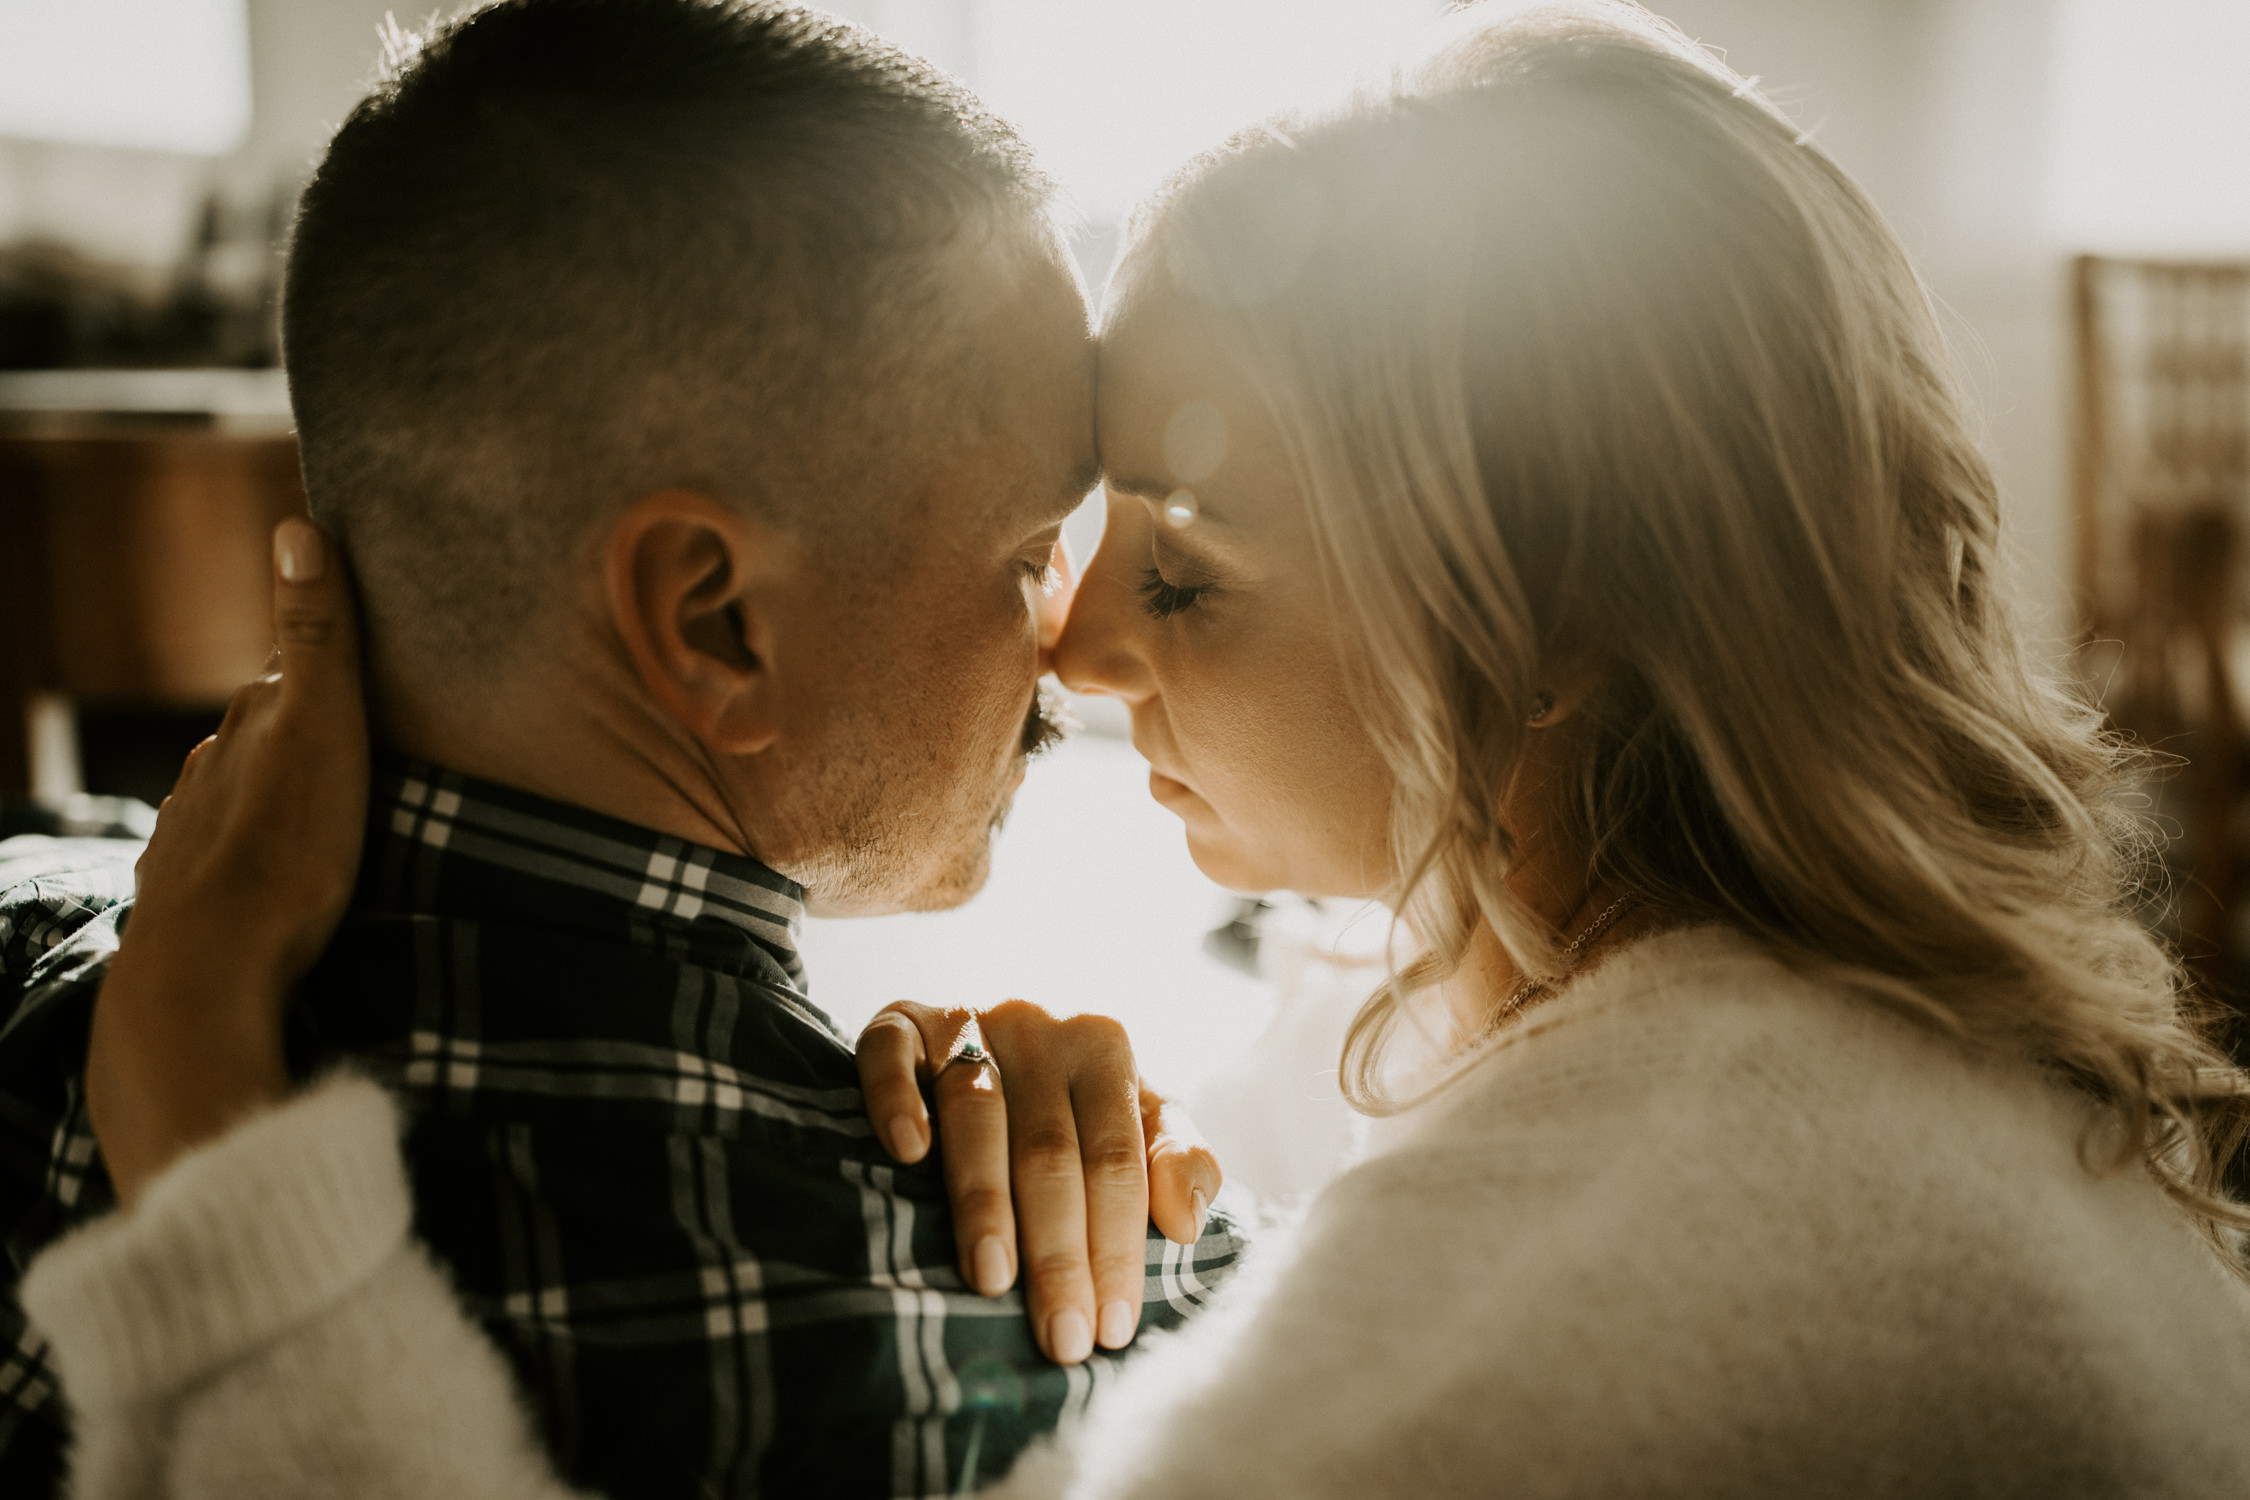 couple-intimate-in-home-session-northern-california-10.jpg